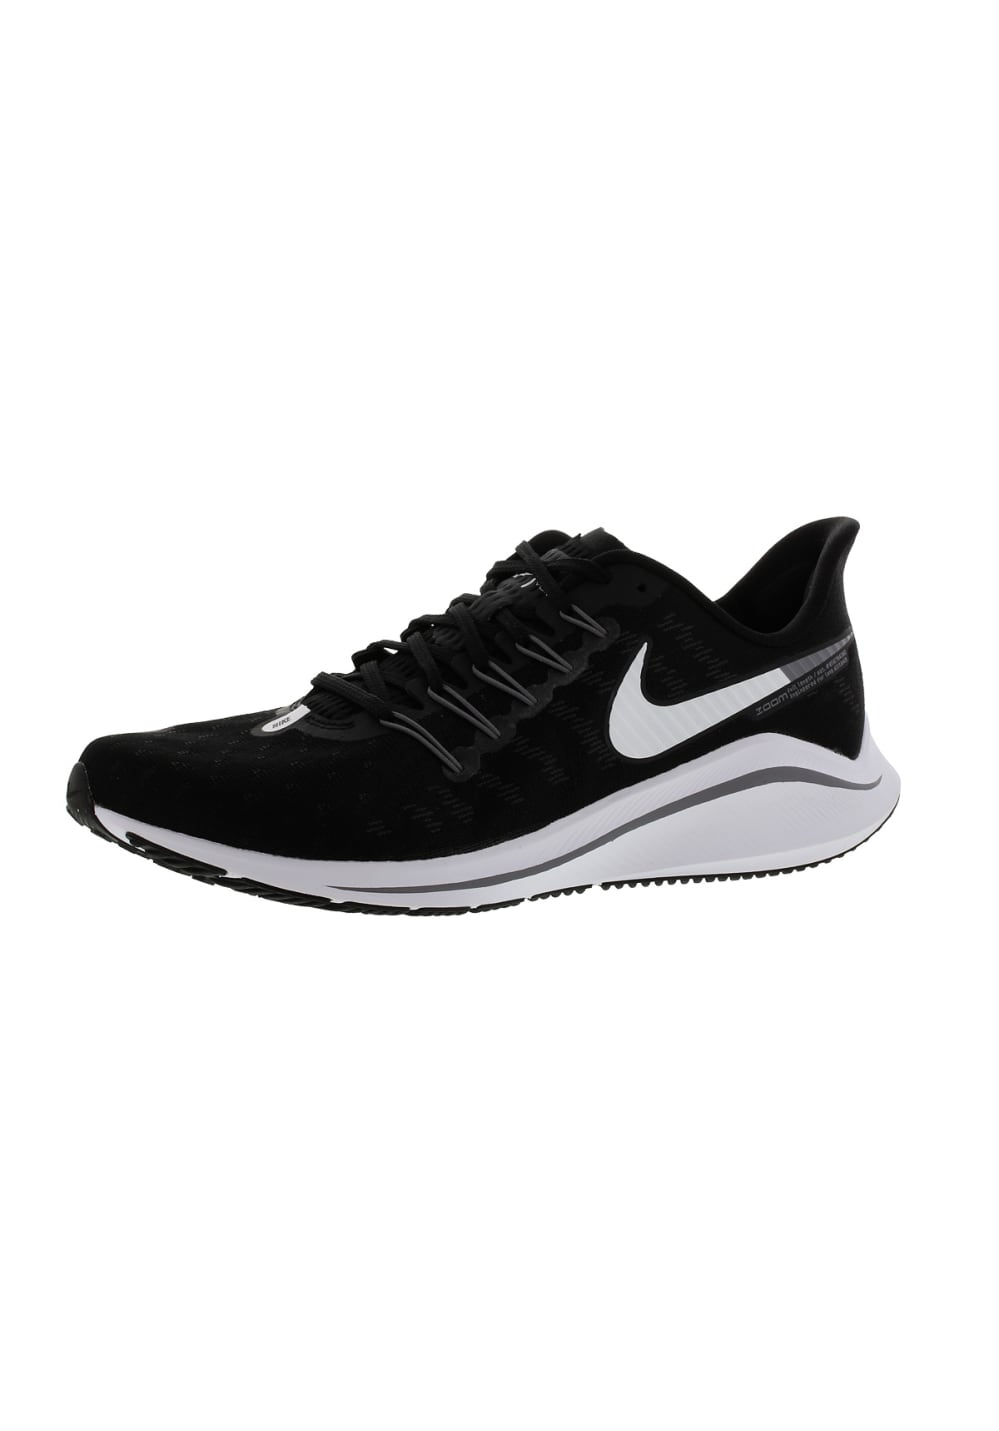 Vomero Zoom Pour Chaussures Homme Air 14 Running Nike Noir CroBedx